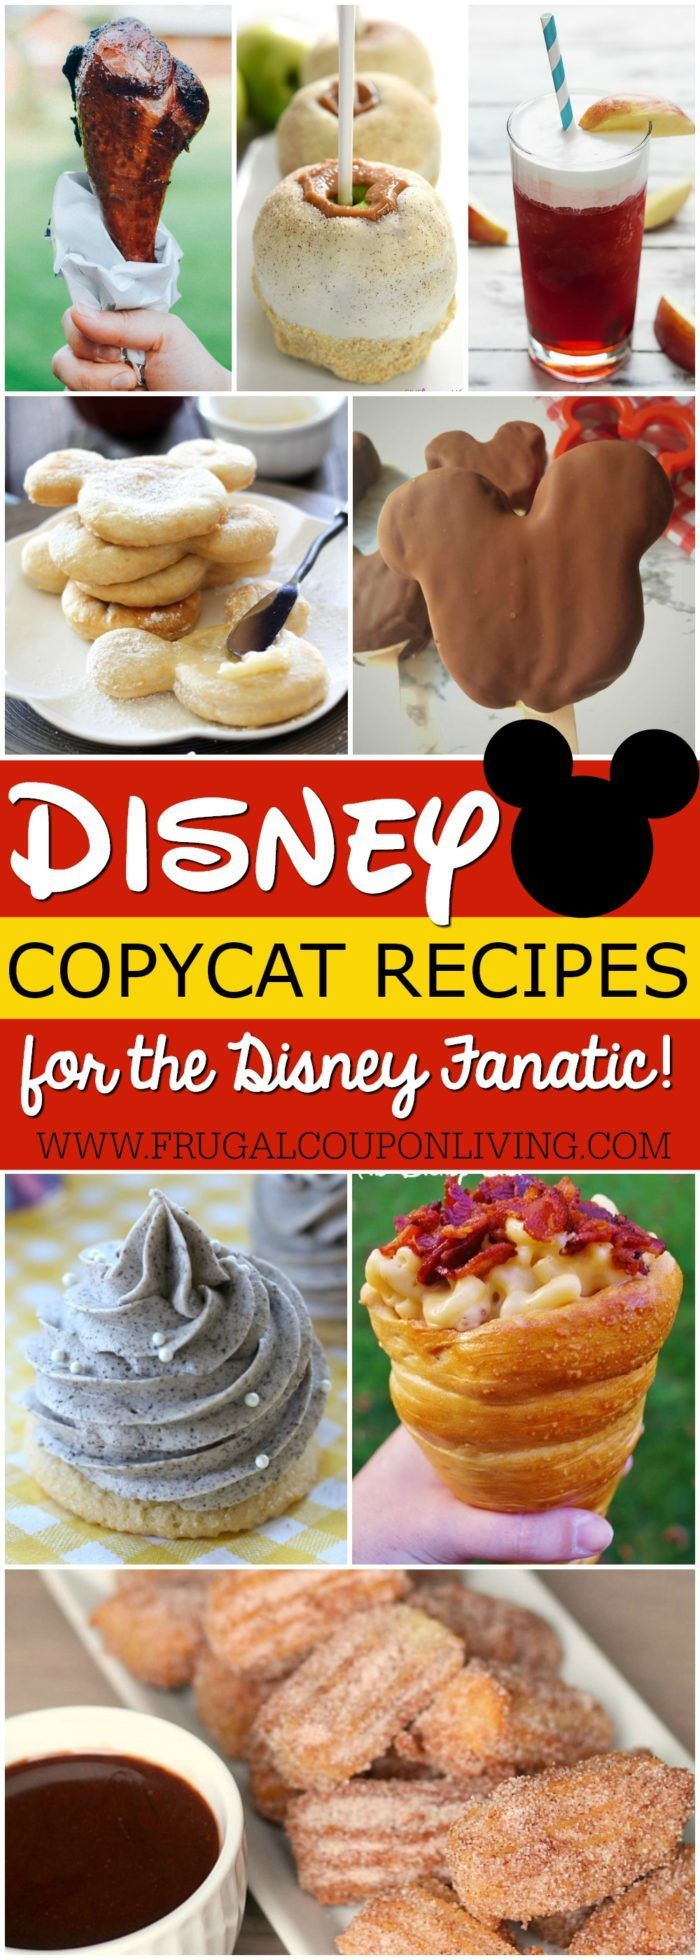 The Best Copycat Disney Recipes For The Disney Fanatic Disney Dessert Recipes Disney Desserts Disney Inspired Food